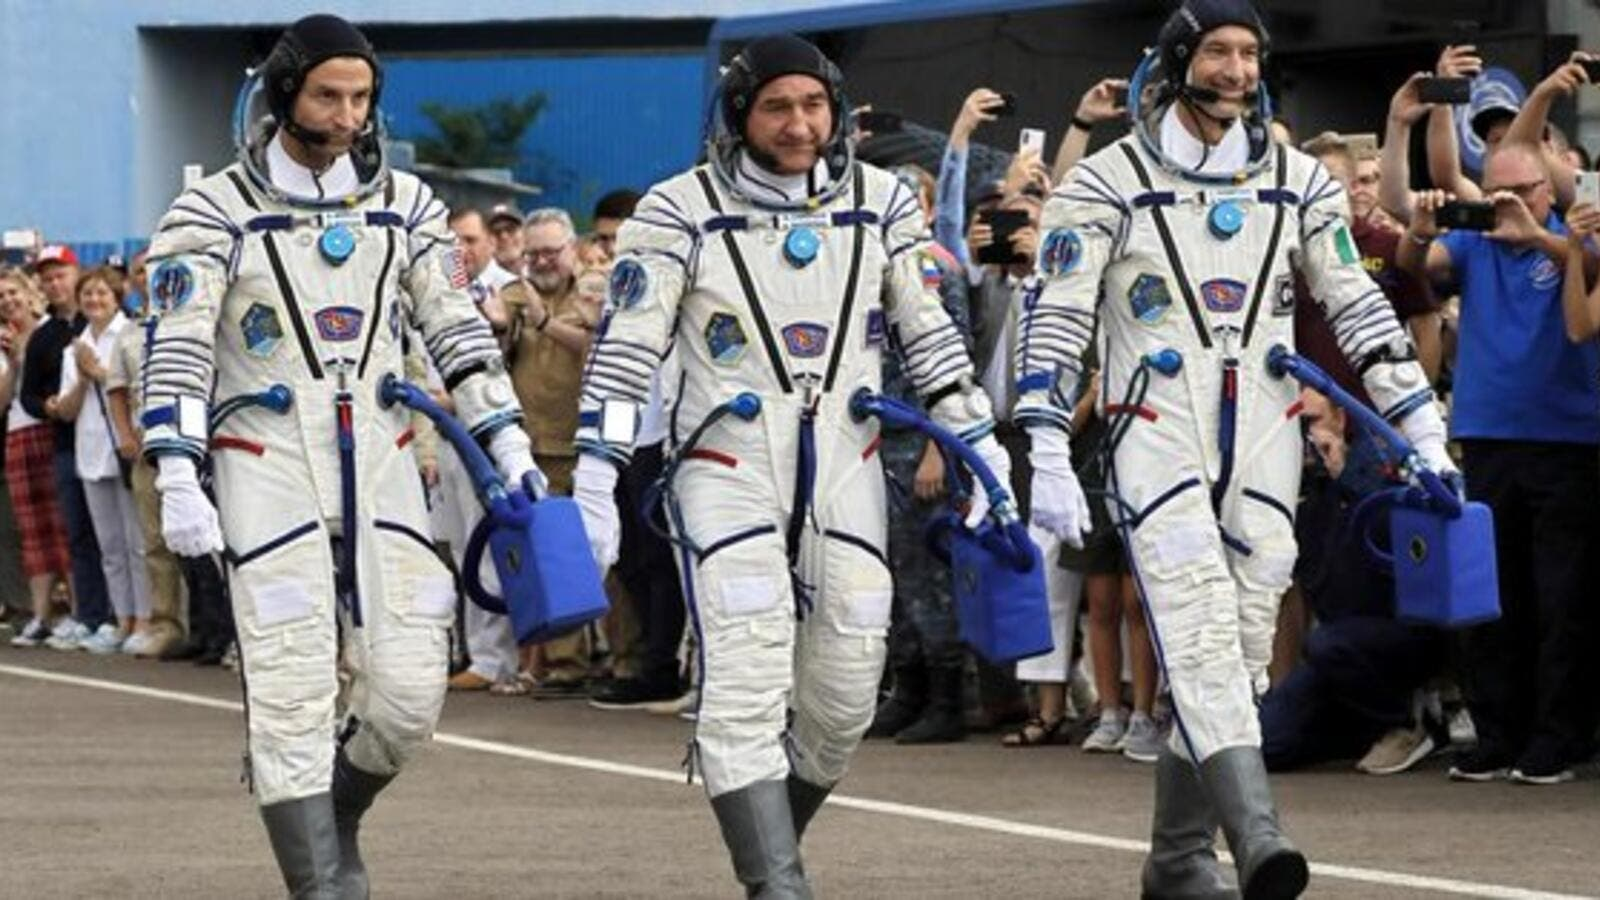 Three astronauts arrive at Int'l Space Station